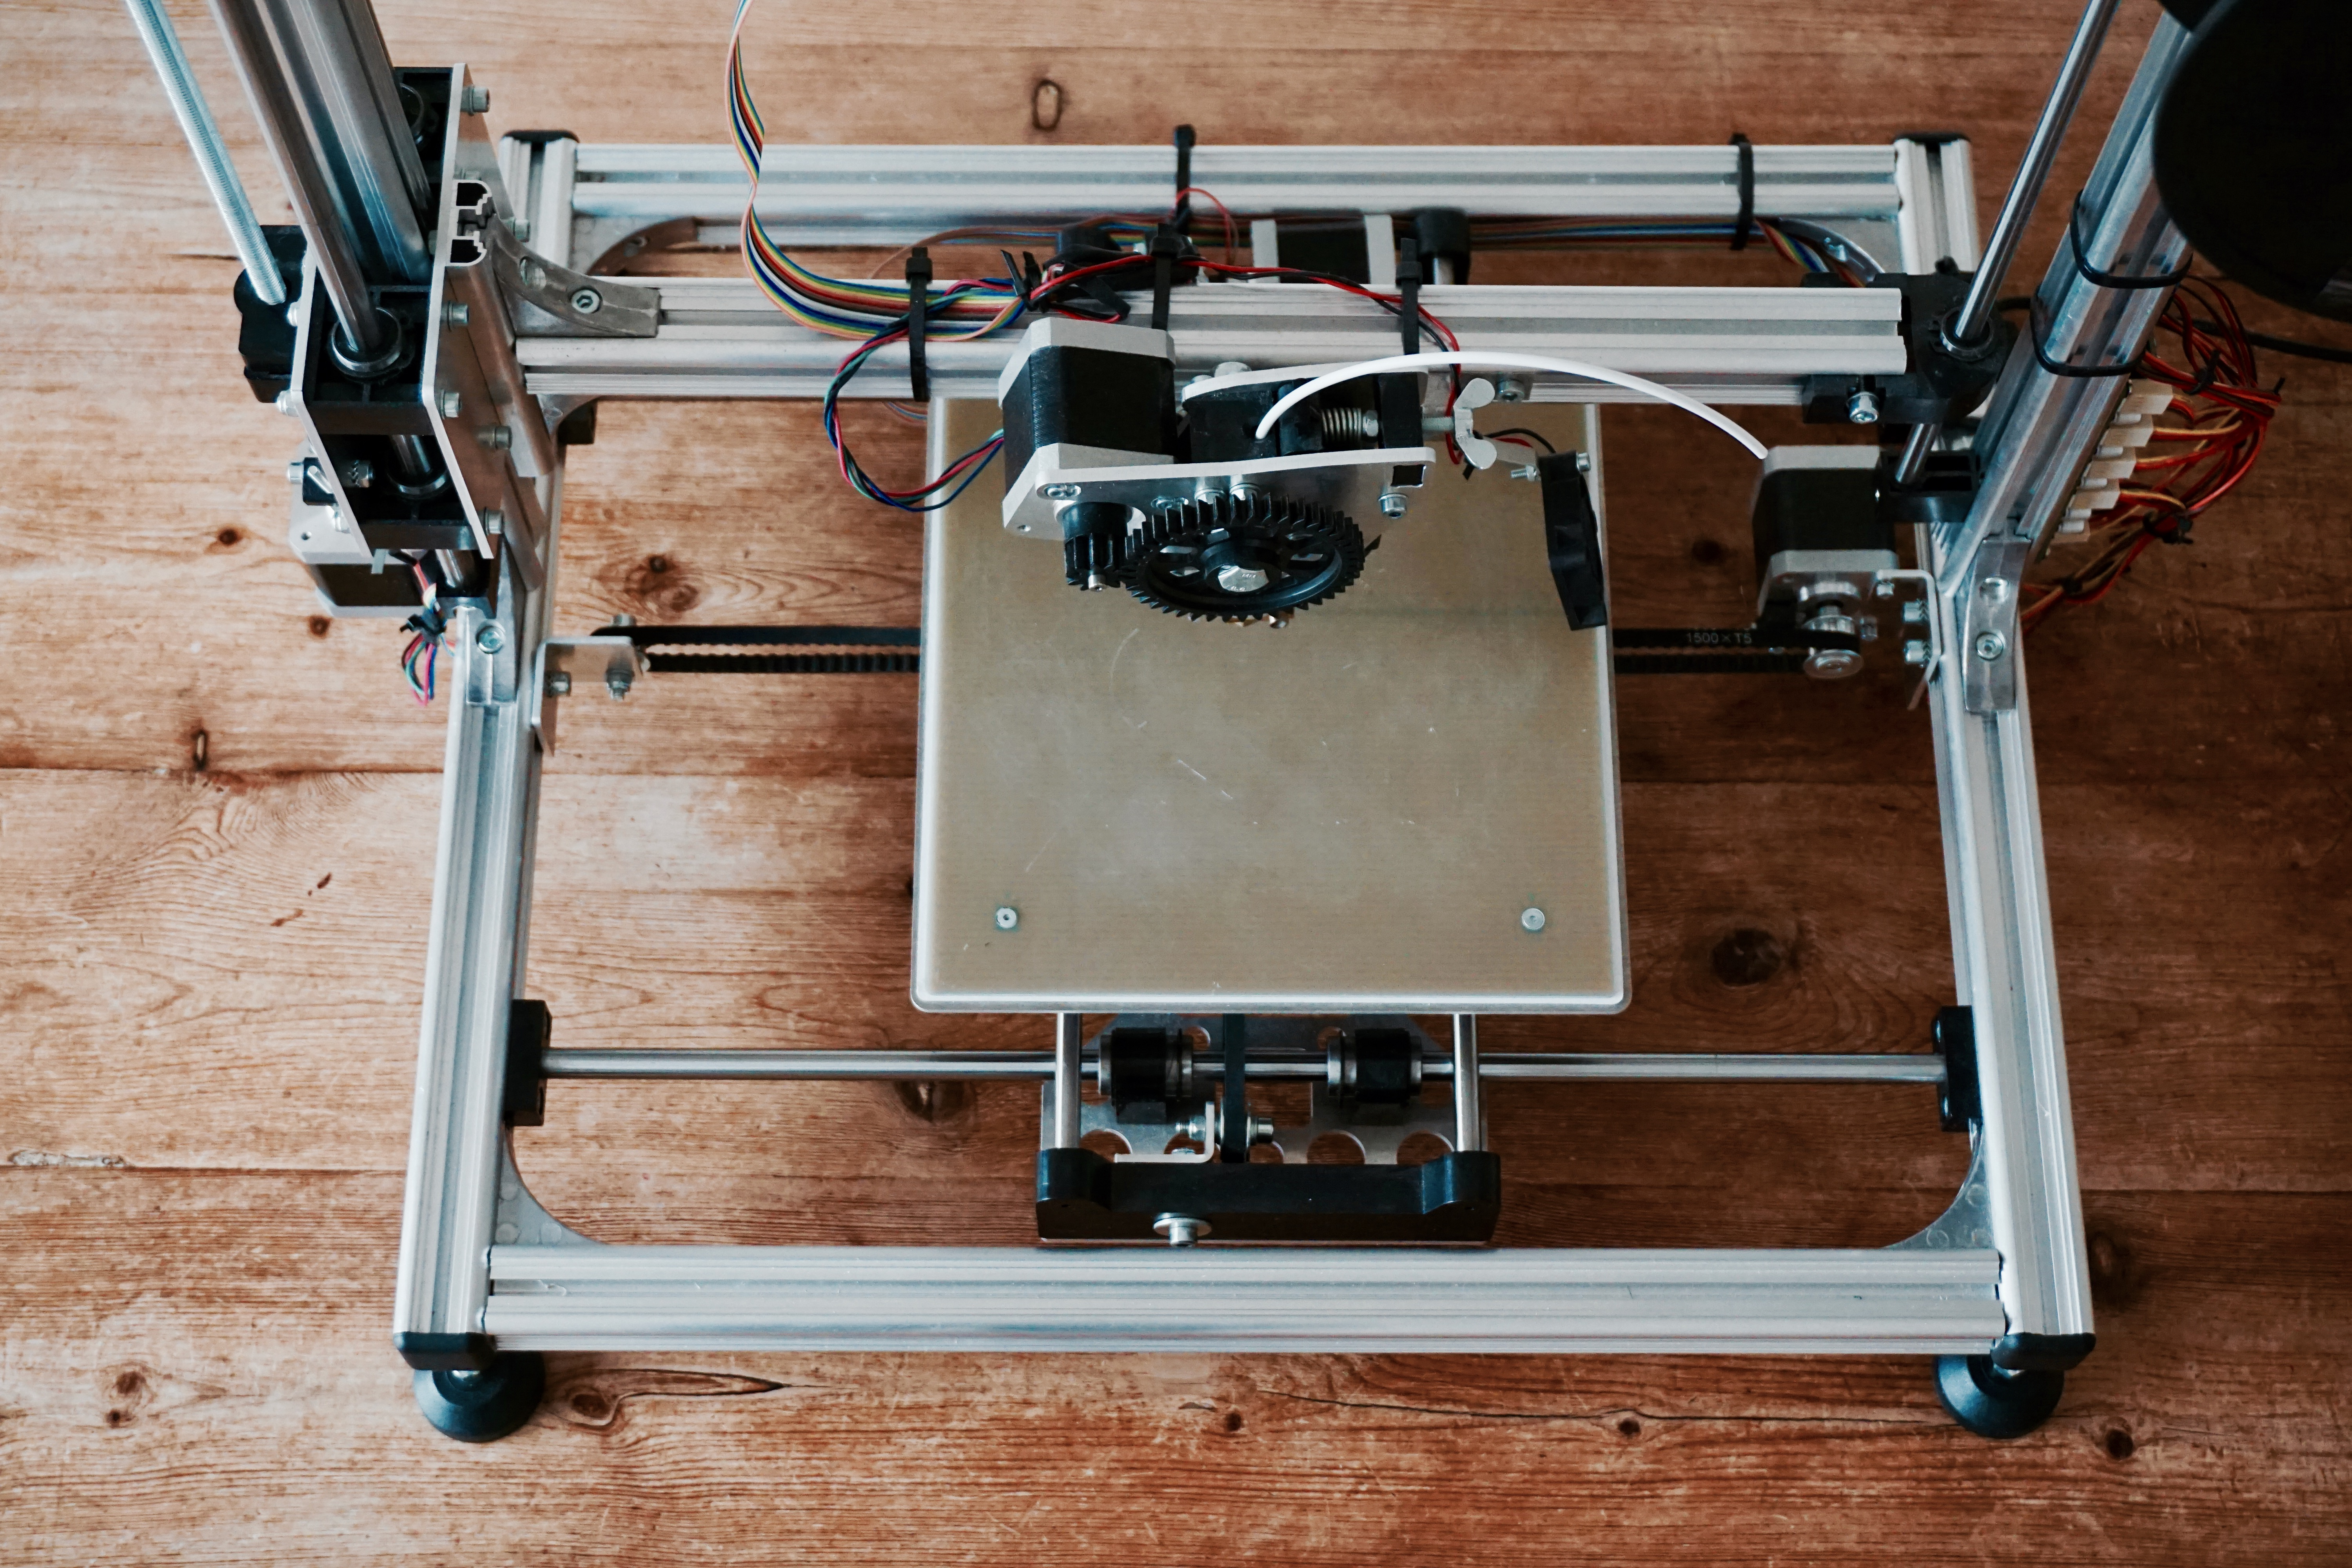 Getting Started With 3d Printing Flite Test Camt Launching Firstever Printer For Printed Circuit Board The Came Shipped In Fairly Large And Very Heavy Box Inside Were A Huge Number Of Parts Most Separate Bags Apart From